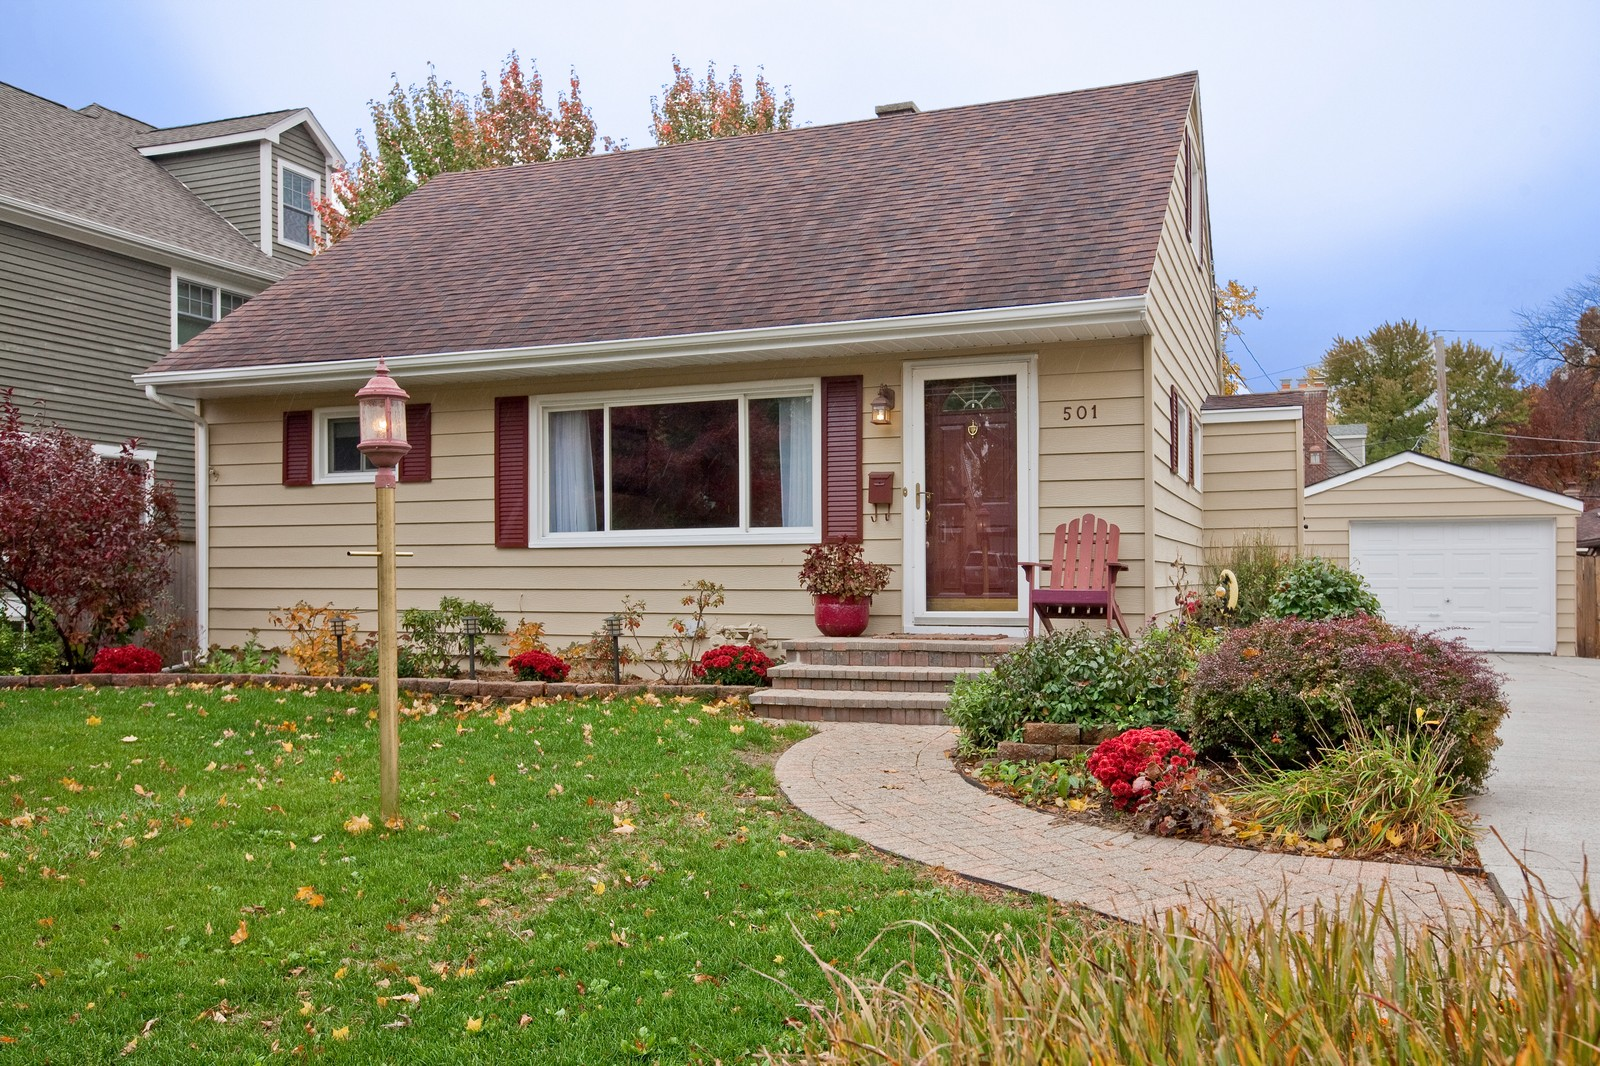 Real Estate Photography - 501 Grant St, Downers Grove, IL, 60515 - Front View